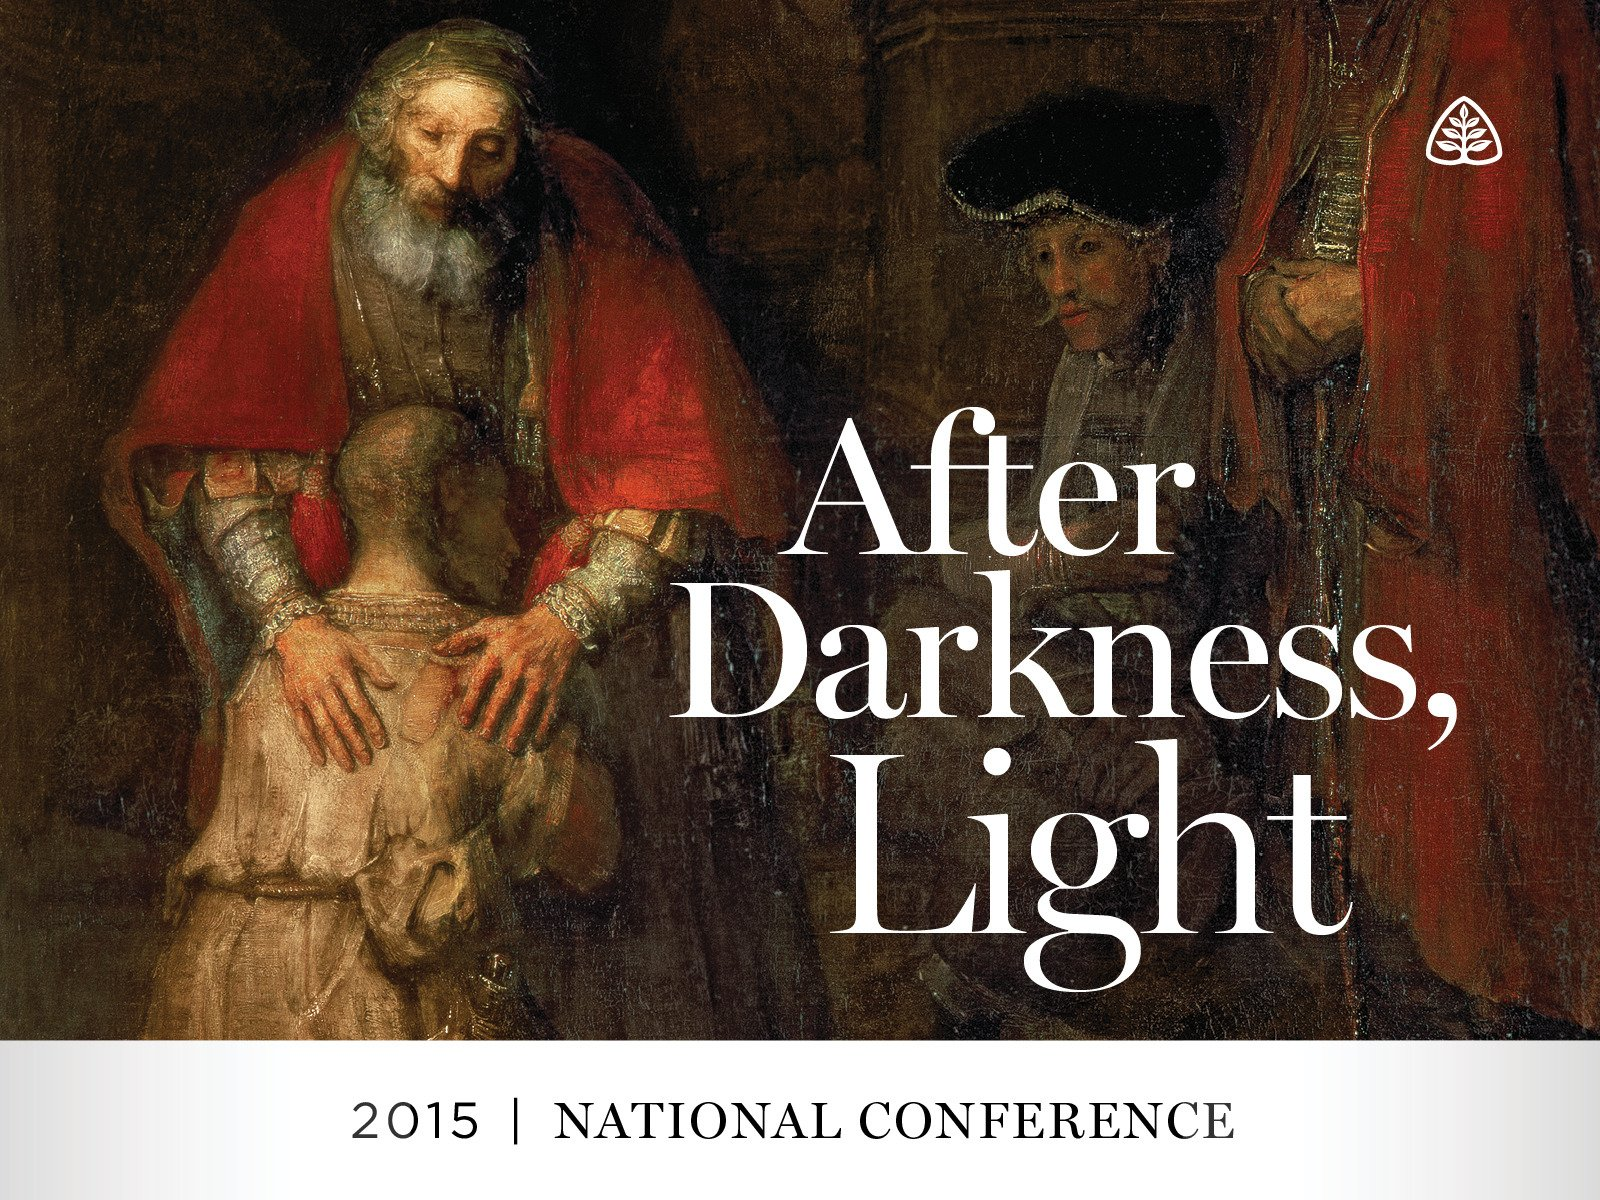 After Darkness, Light: 2015 National Conference - Season 1